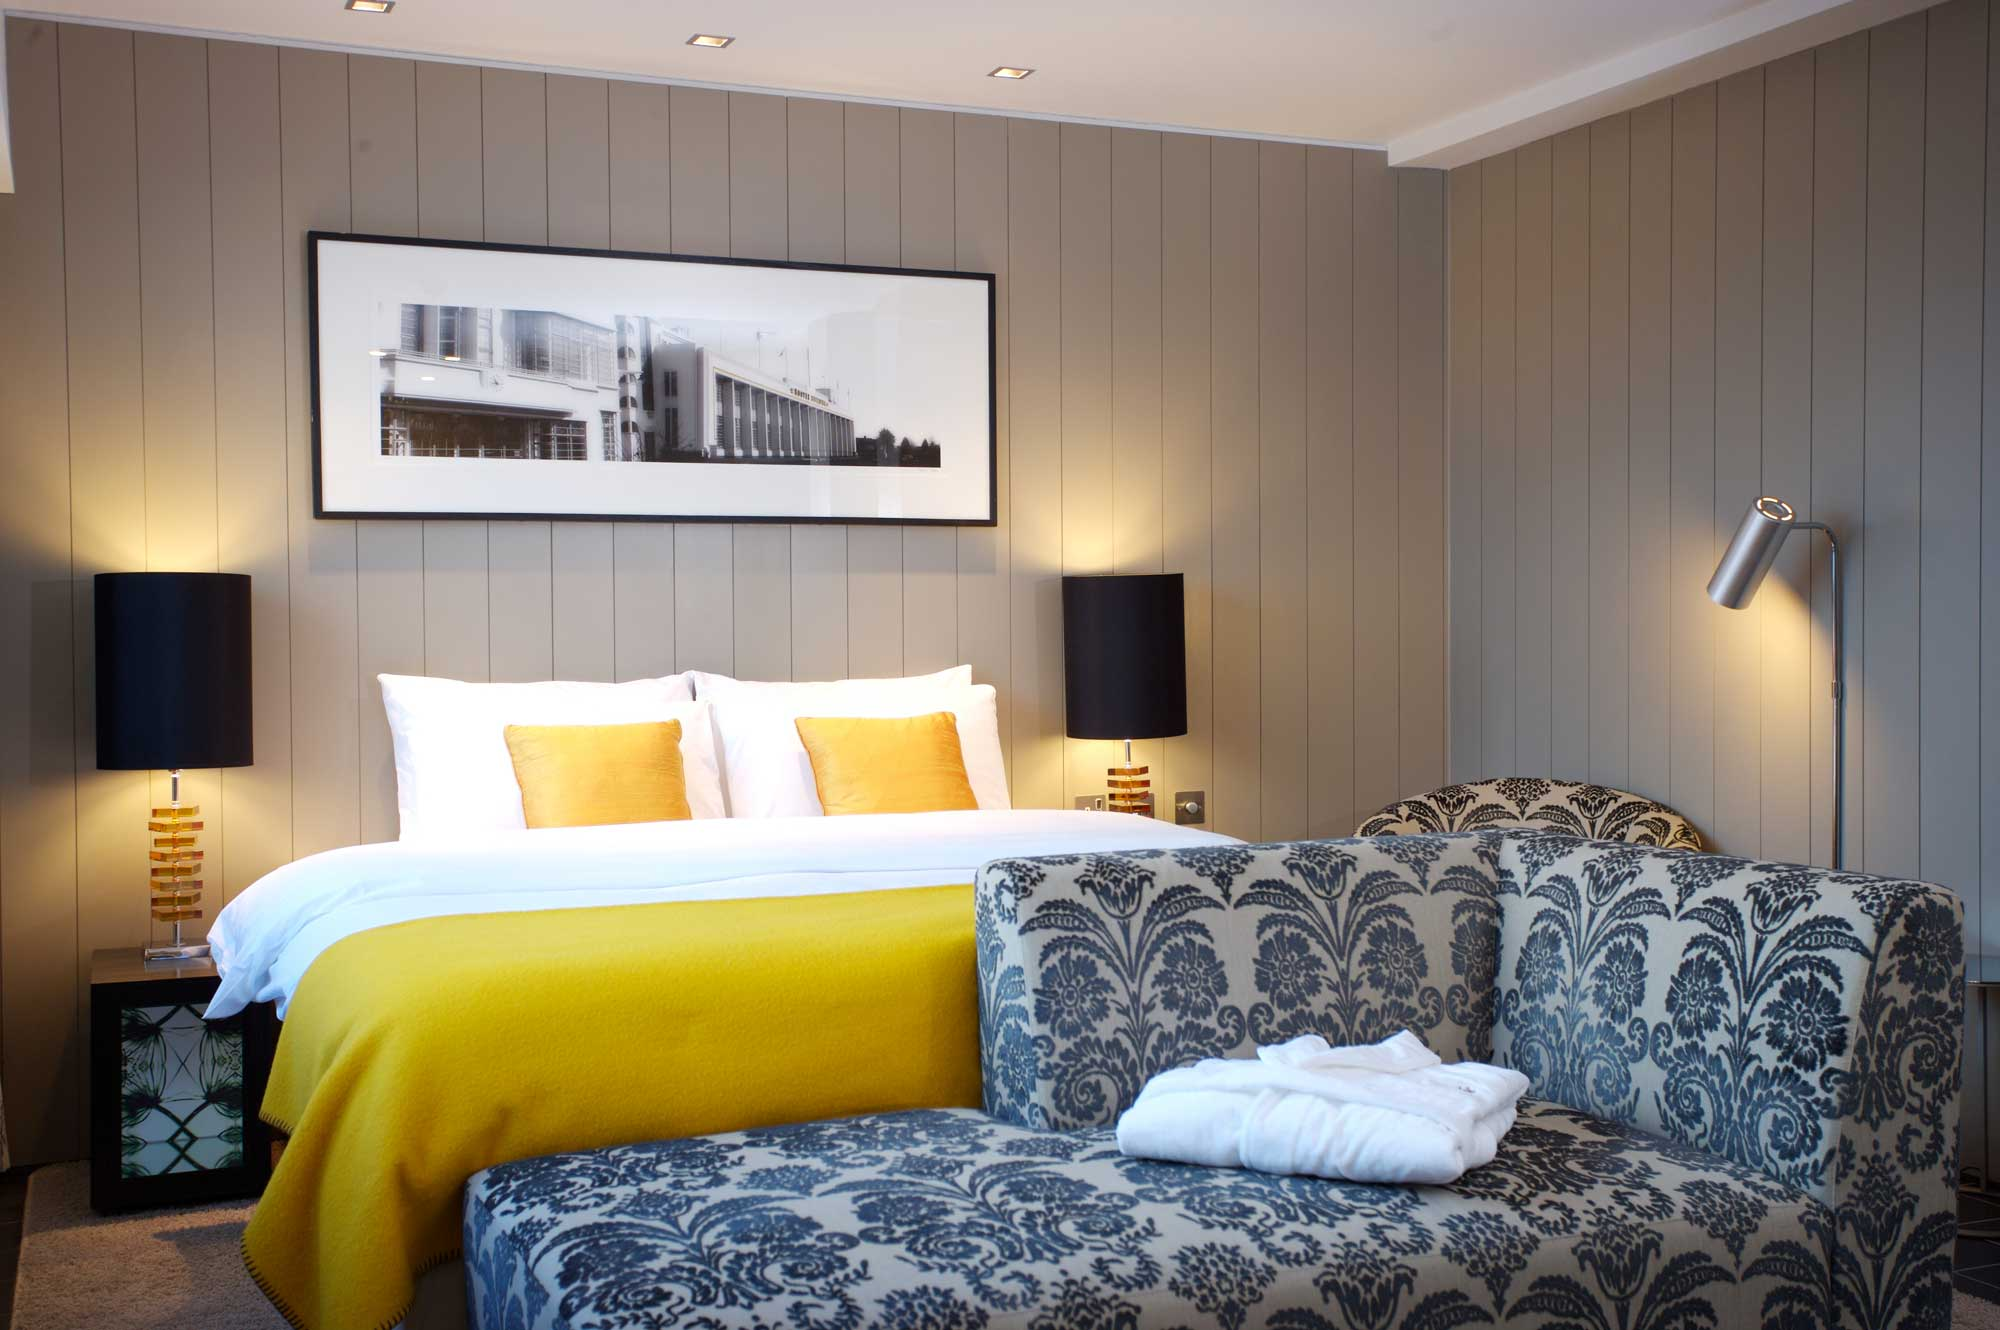 Chiswick Moran Hotel: 6 minute drive from Westpoint.